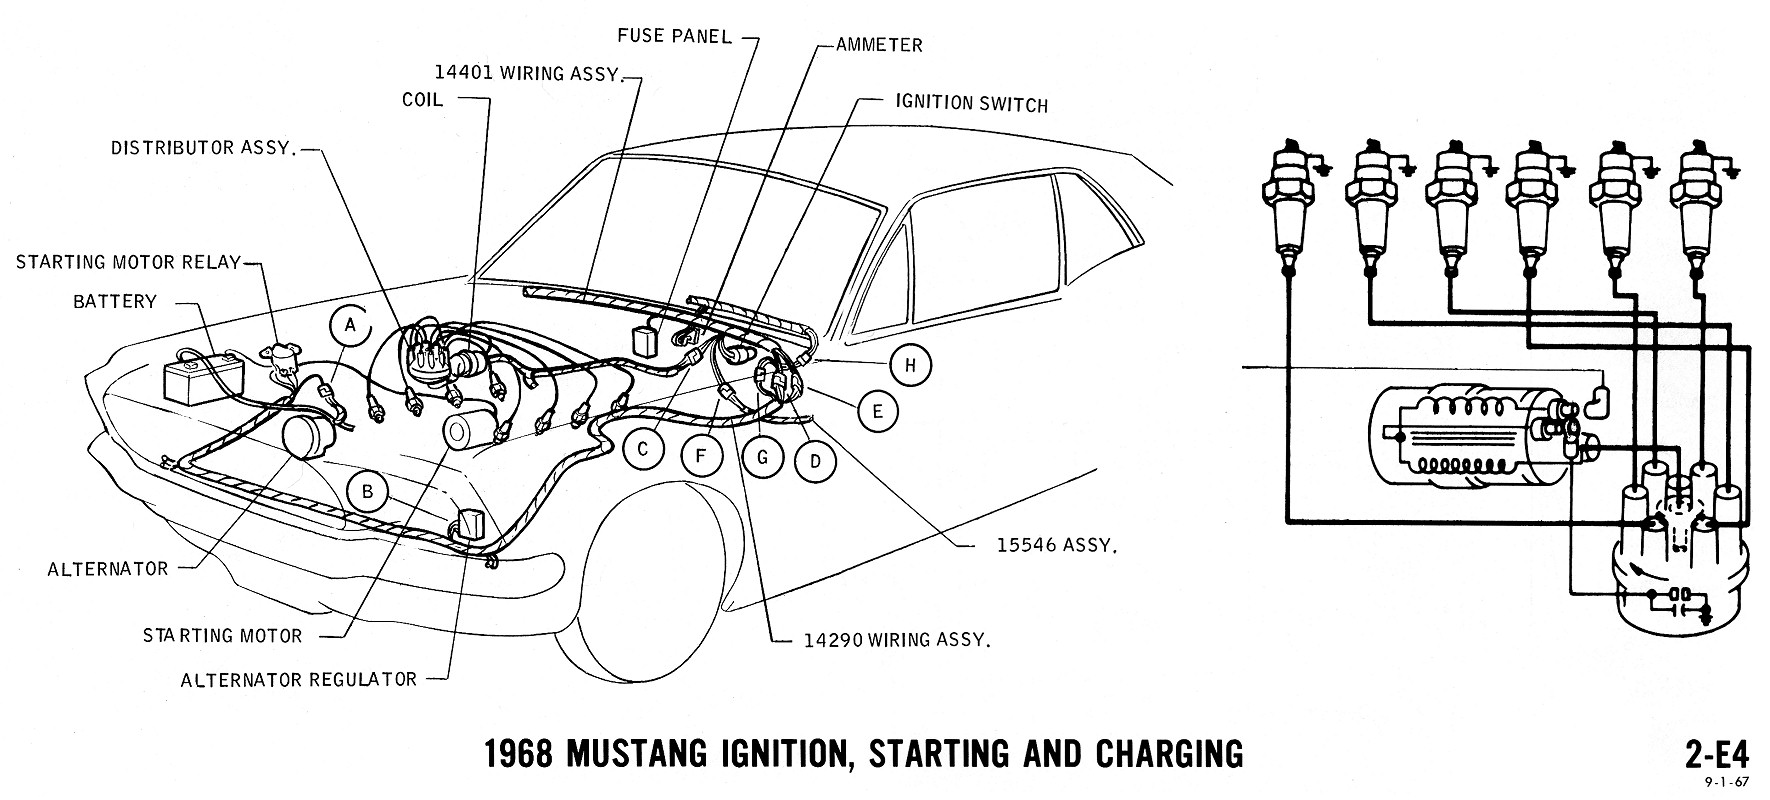 1968 mustang wiring diagram ignition starting charging 2 1968 mustang wiring diagrams and vacuum schematics average joe 1969 mustang wiring diagram at honlapkeszites.co